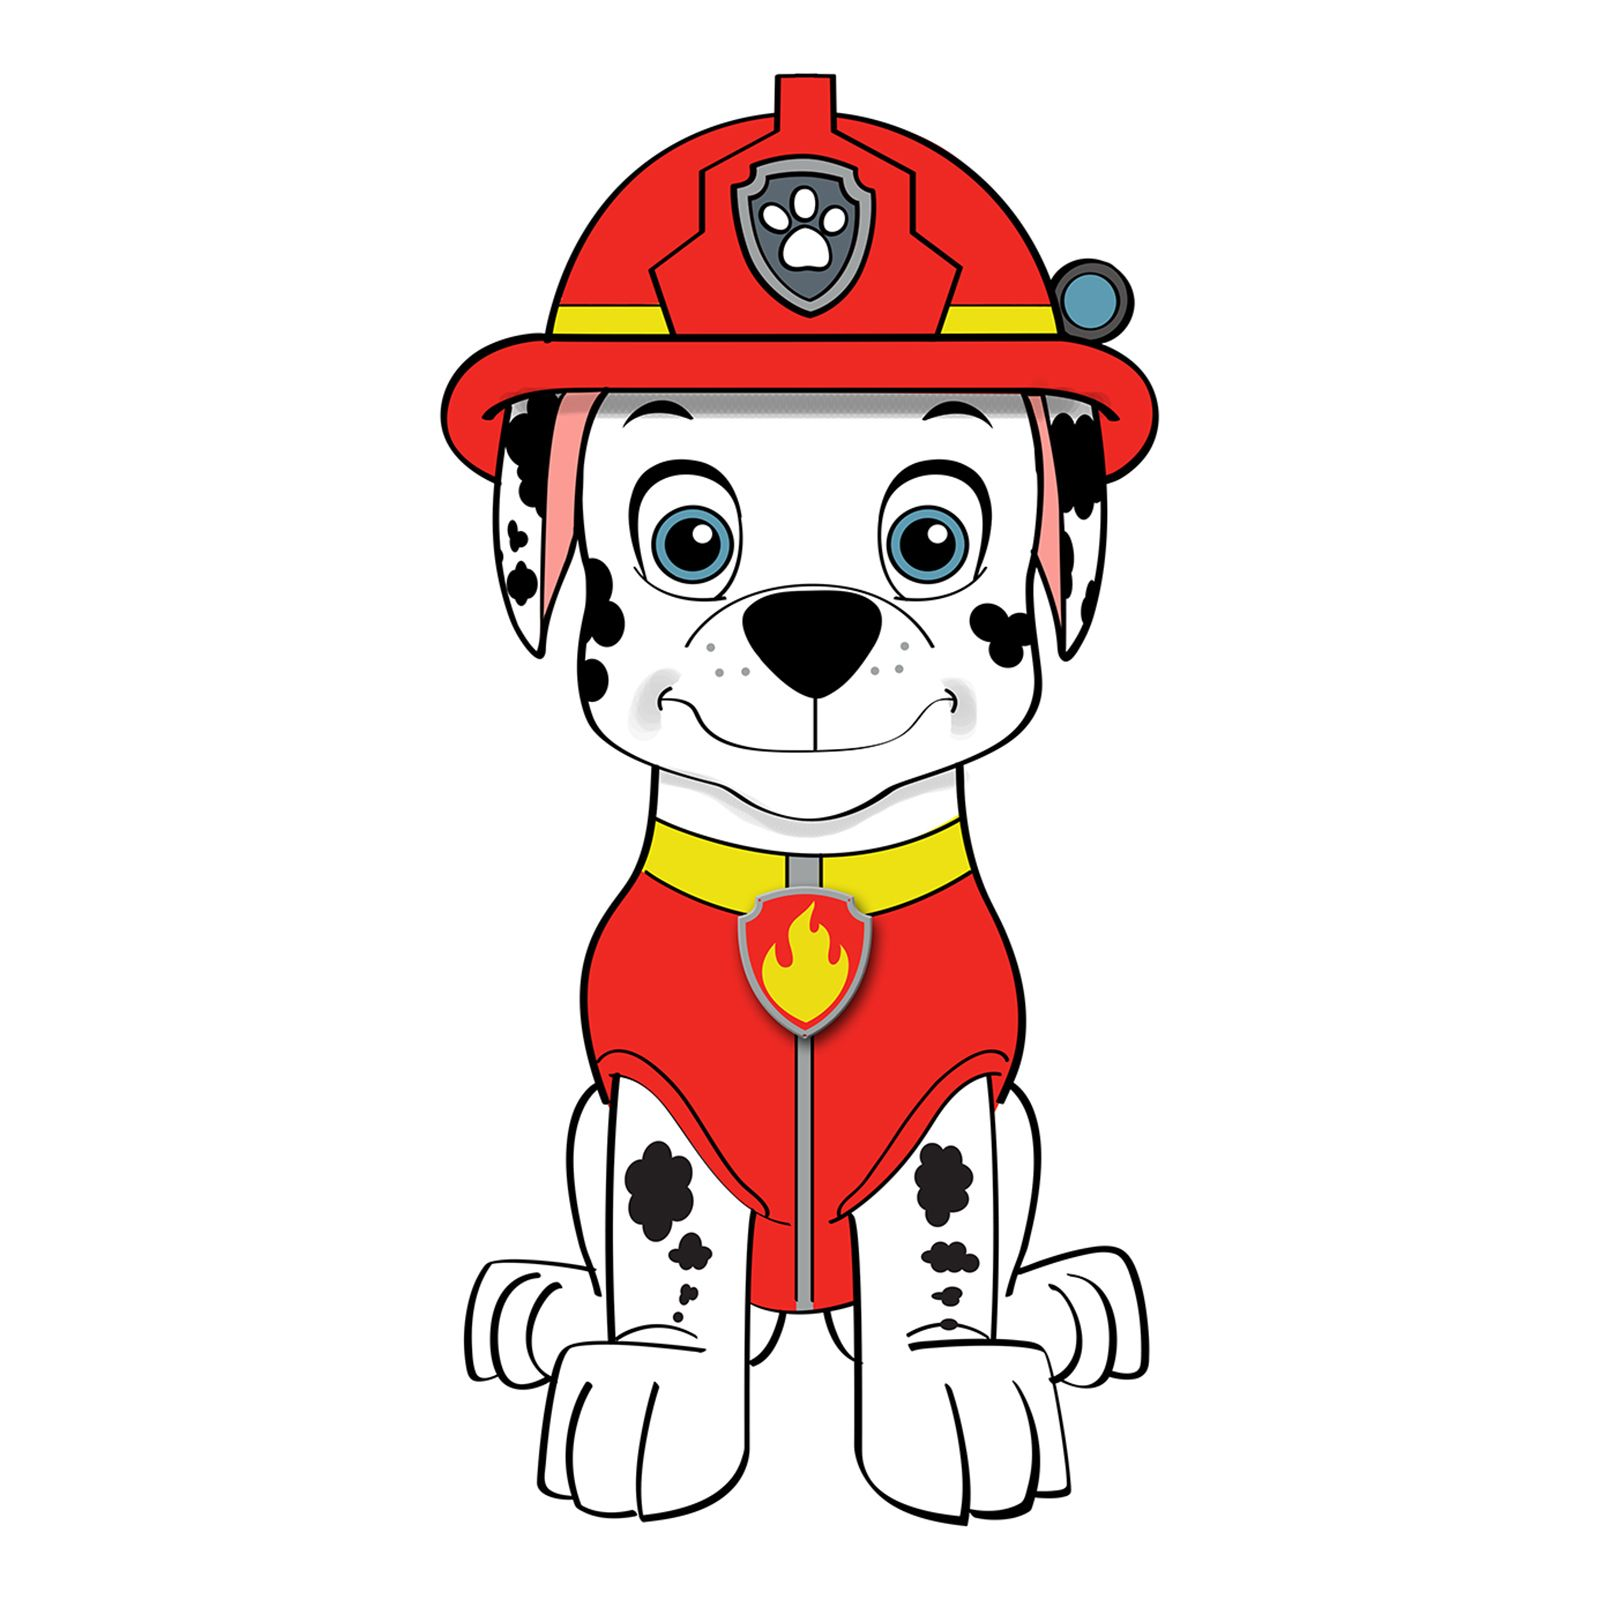 Nickelodeon Paw Patrol Marshall Cuddle Pillow Marshall Paw Patrol Paw Patrol Coloring Paw Patrol Characters